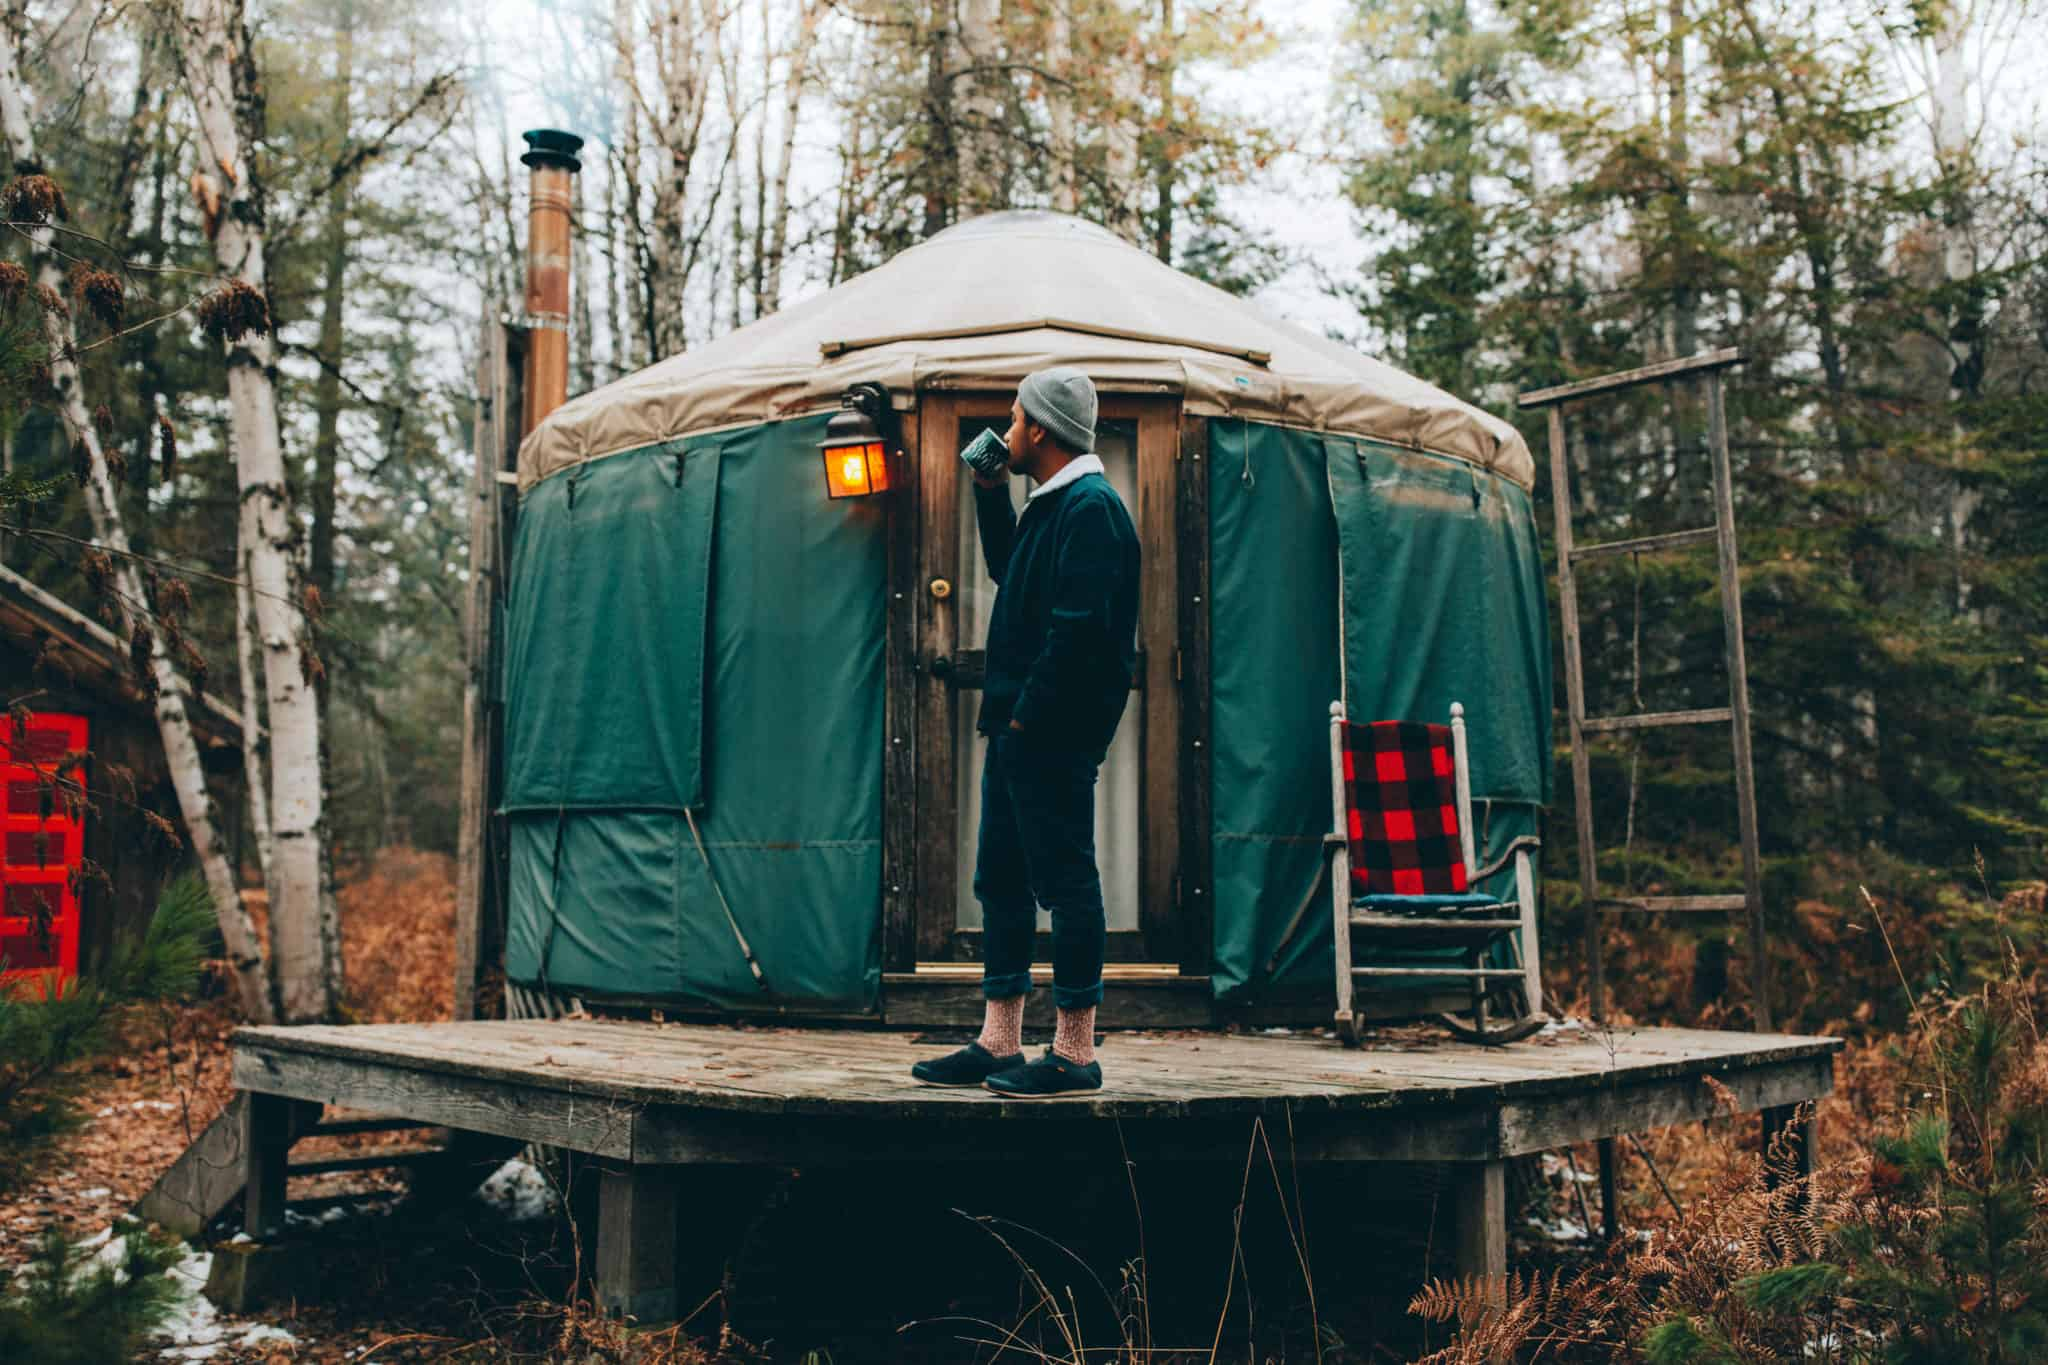 Your Quick And Easy Guide To Glamping In A Yurt The Mandagies Yurts in utah can be found on some of the state's most popular trails and public lands. your quick and easy guide to glamping in a yurt the mandagies